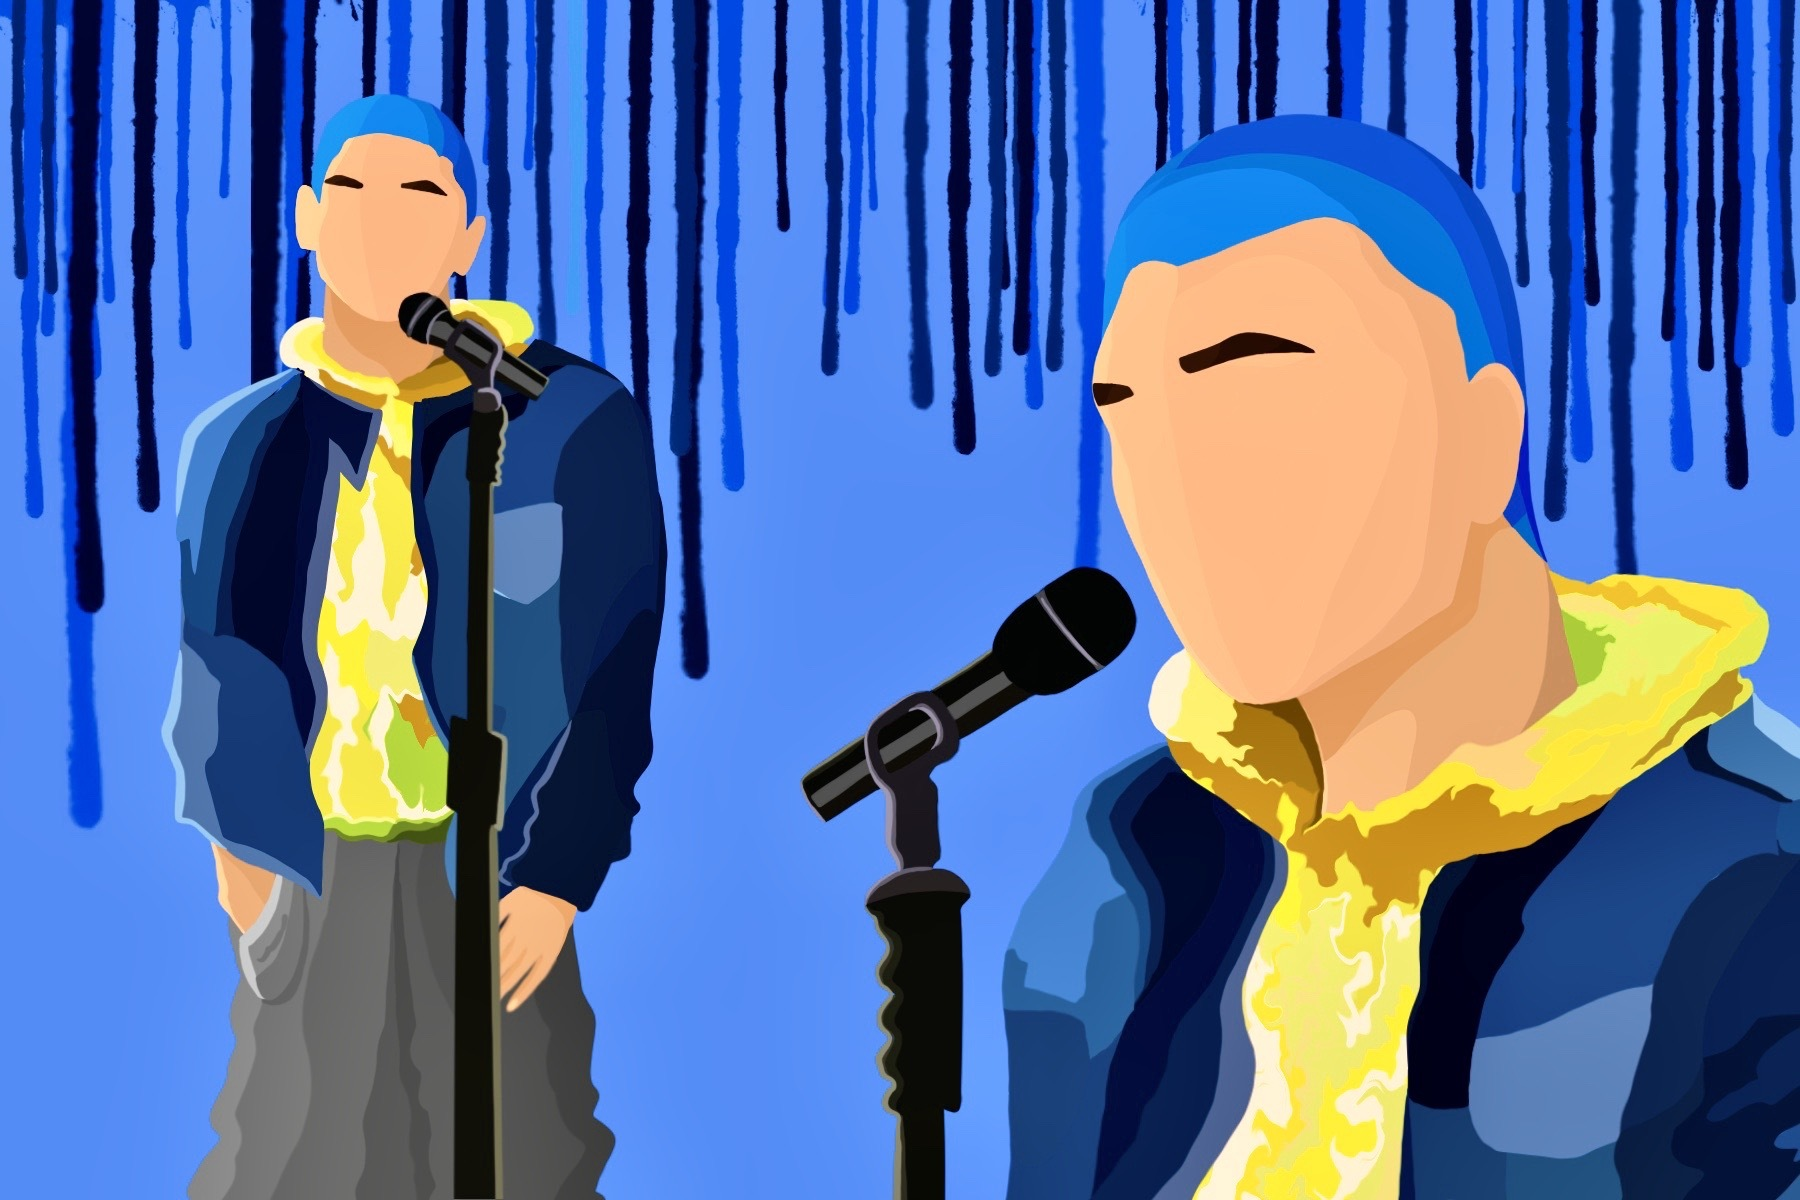 Lauv sings while using the color blue and yellow to represent the emotions of his performance.